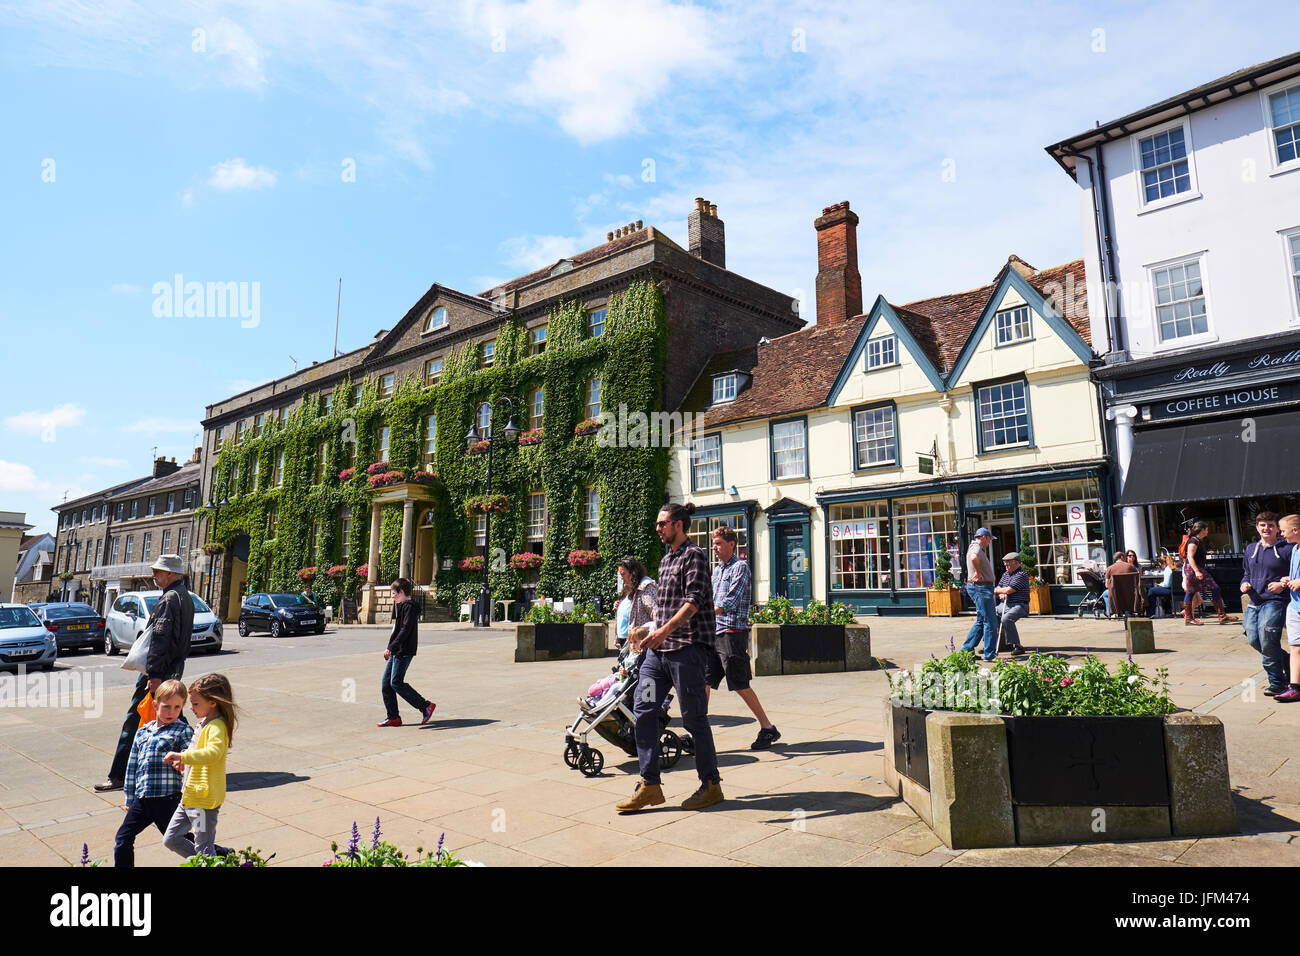 Angel Hotel, Angel Hill, Bury St Edmunds, Suffolk, UK - Stock Image